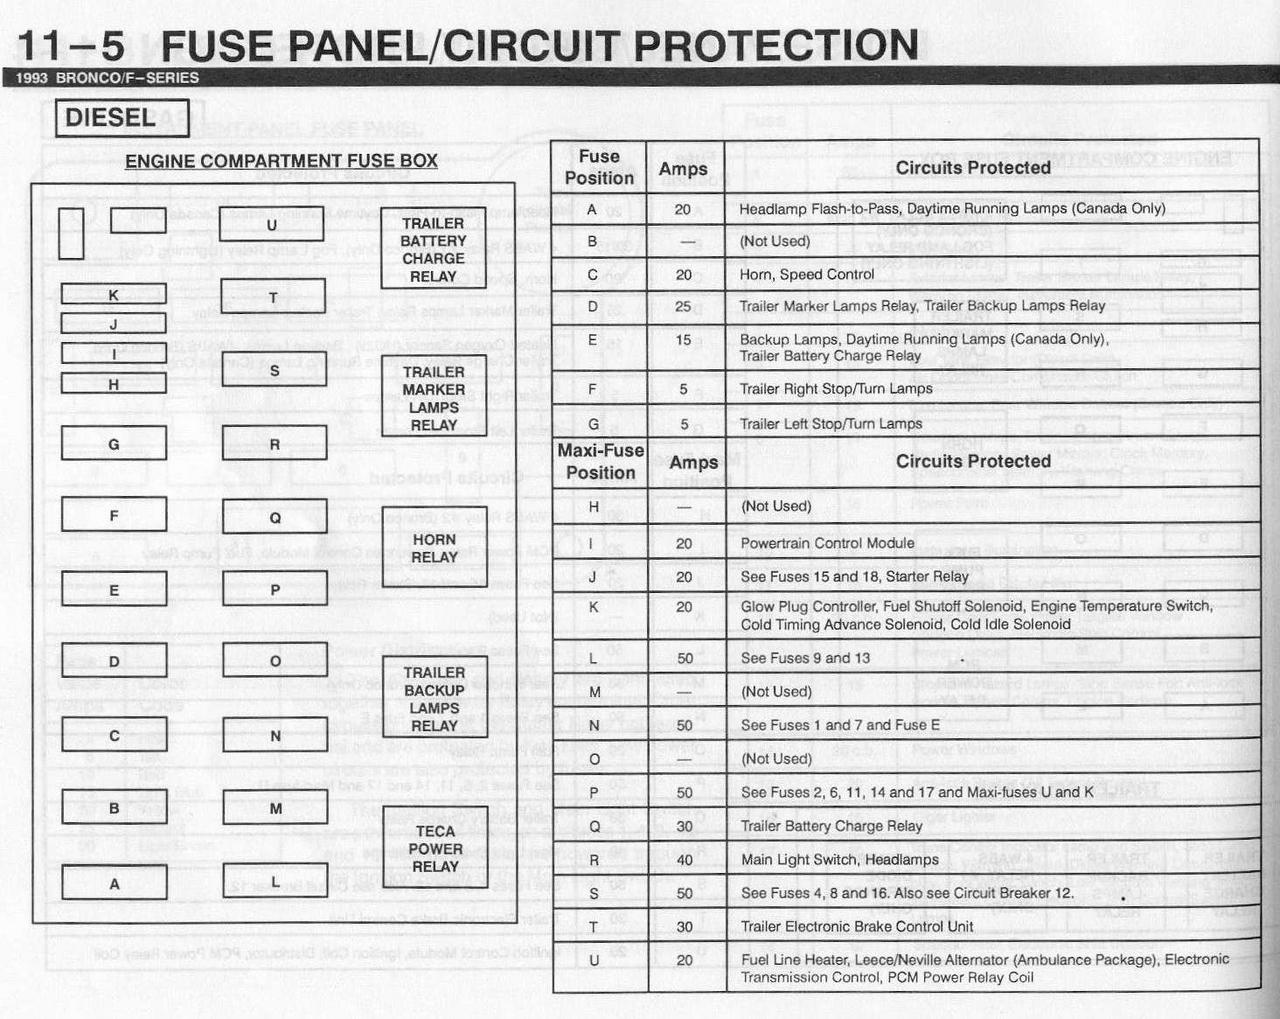 2007 Ford F150 Fuse Diagram Trusted Schematics Highbeam F 150 07 Box